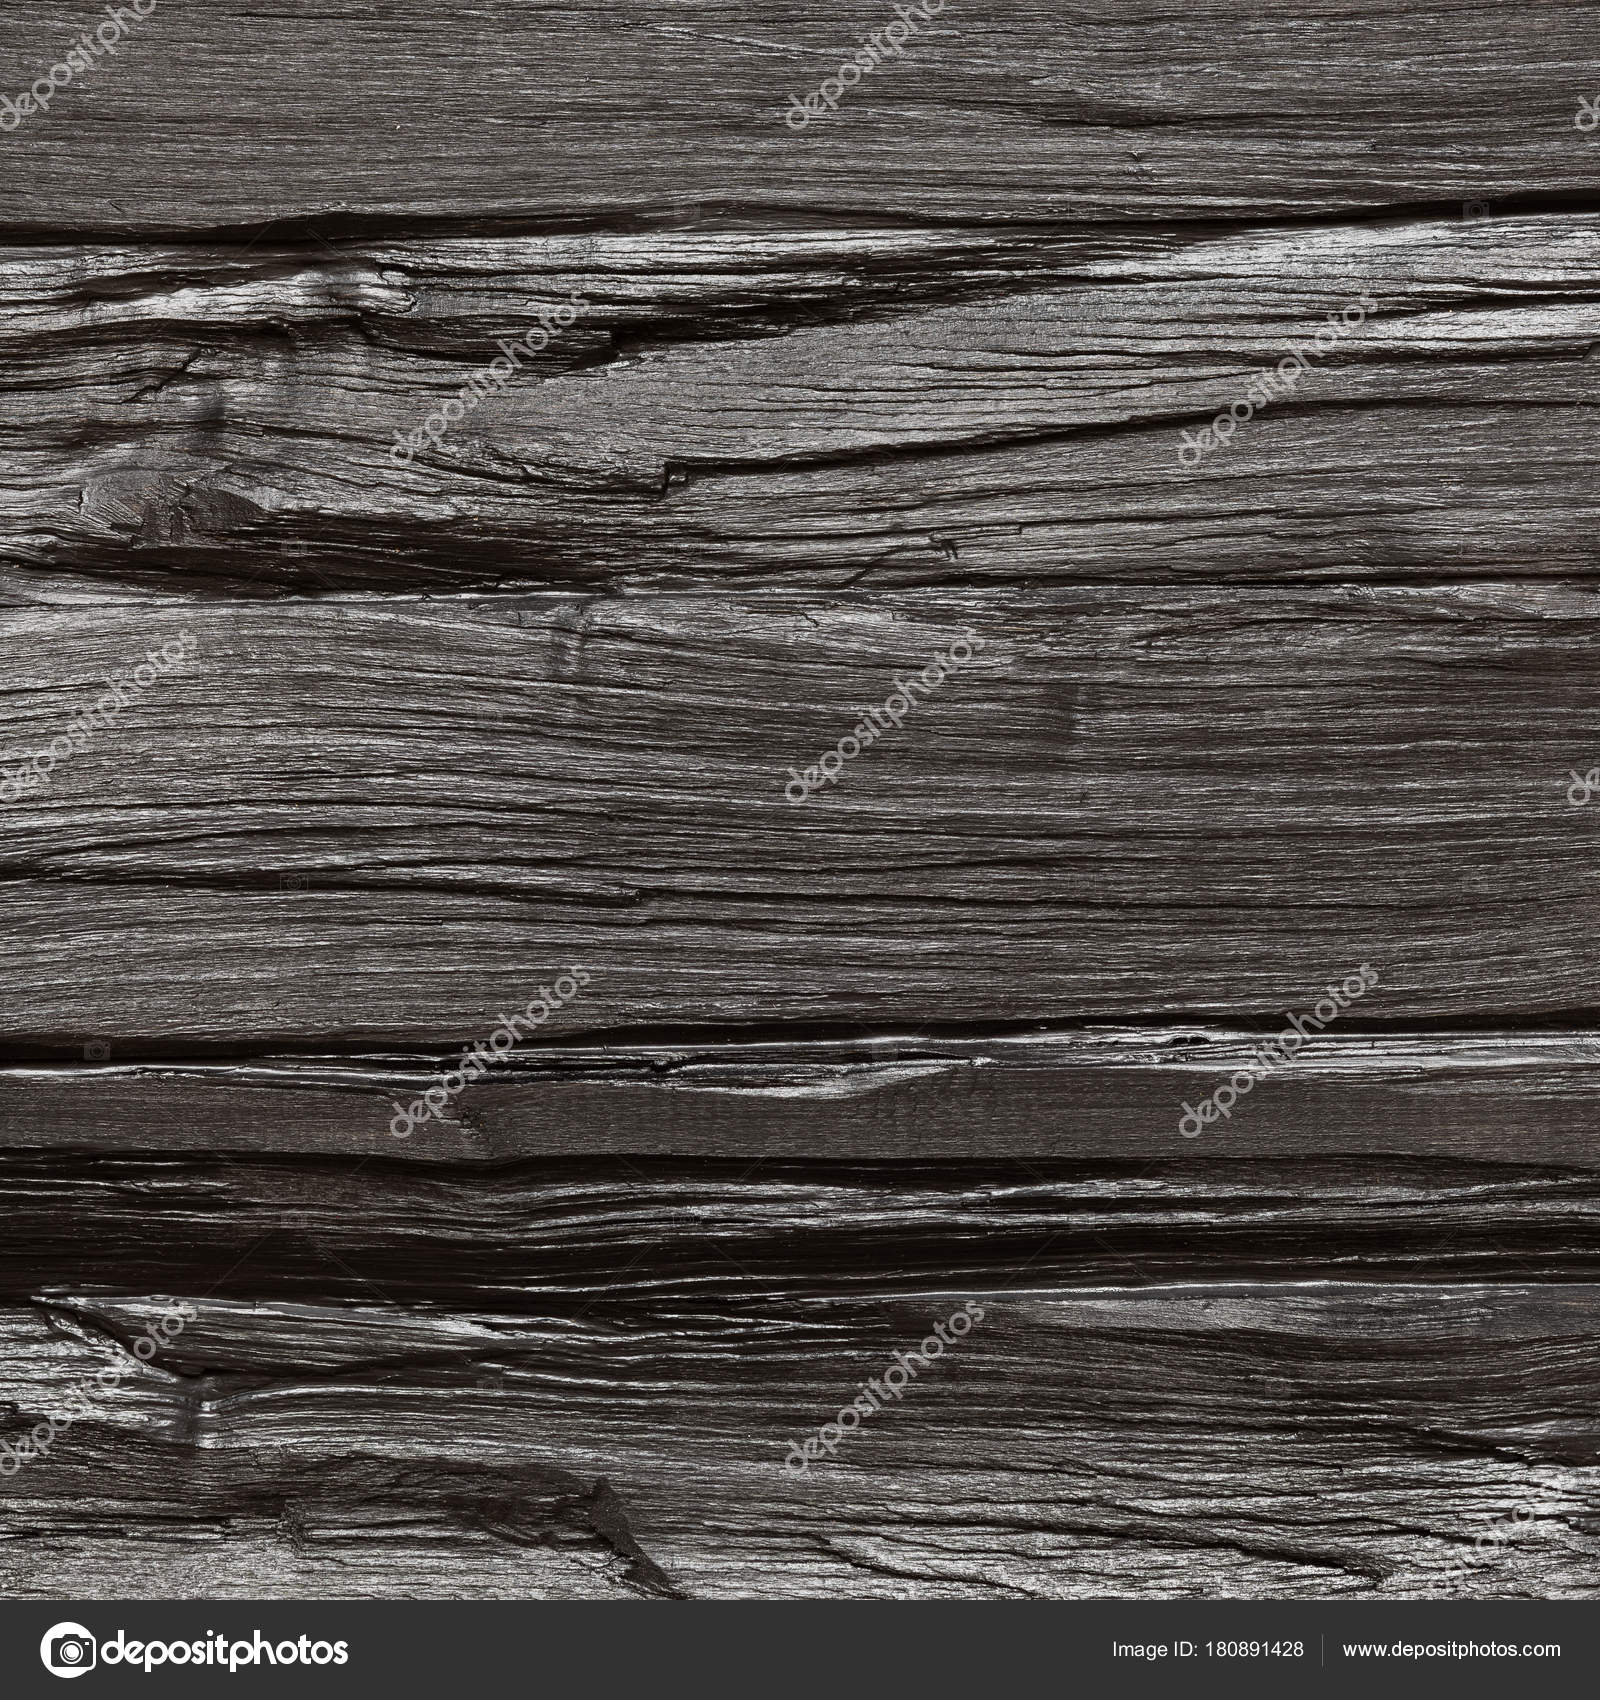 Rustic Black Wood Texture Stock Photo